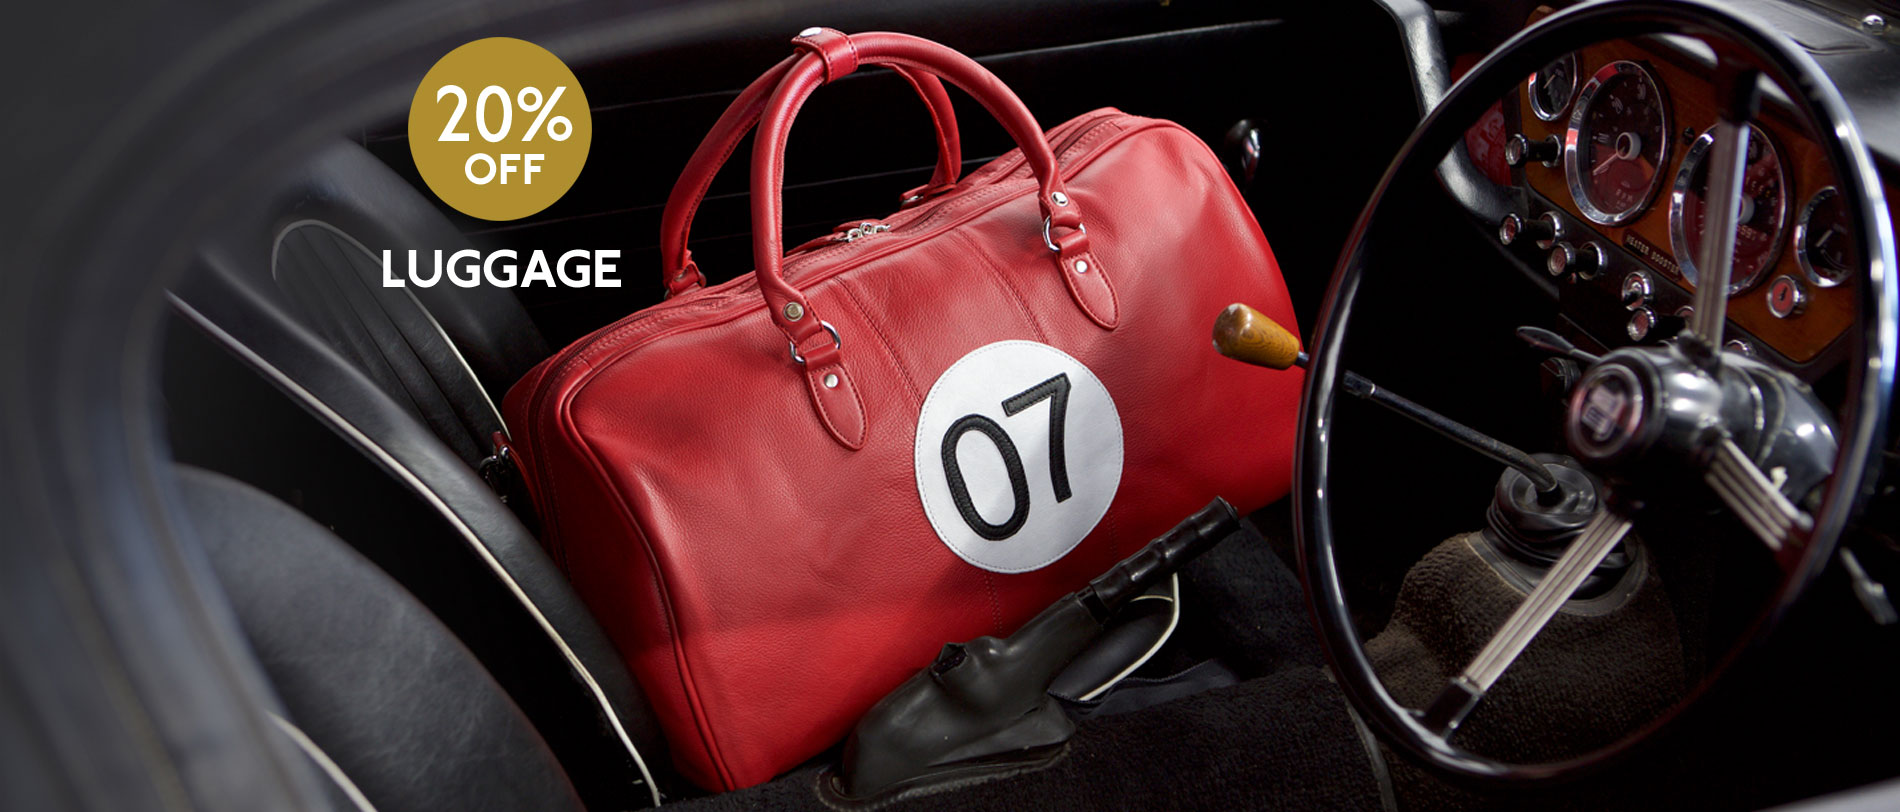 Luggage now 20% off for a great getaway this August